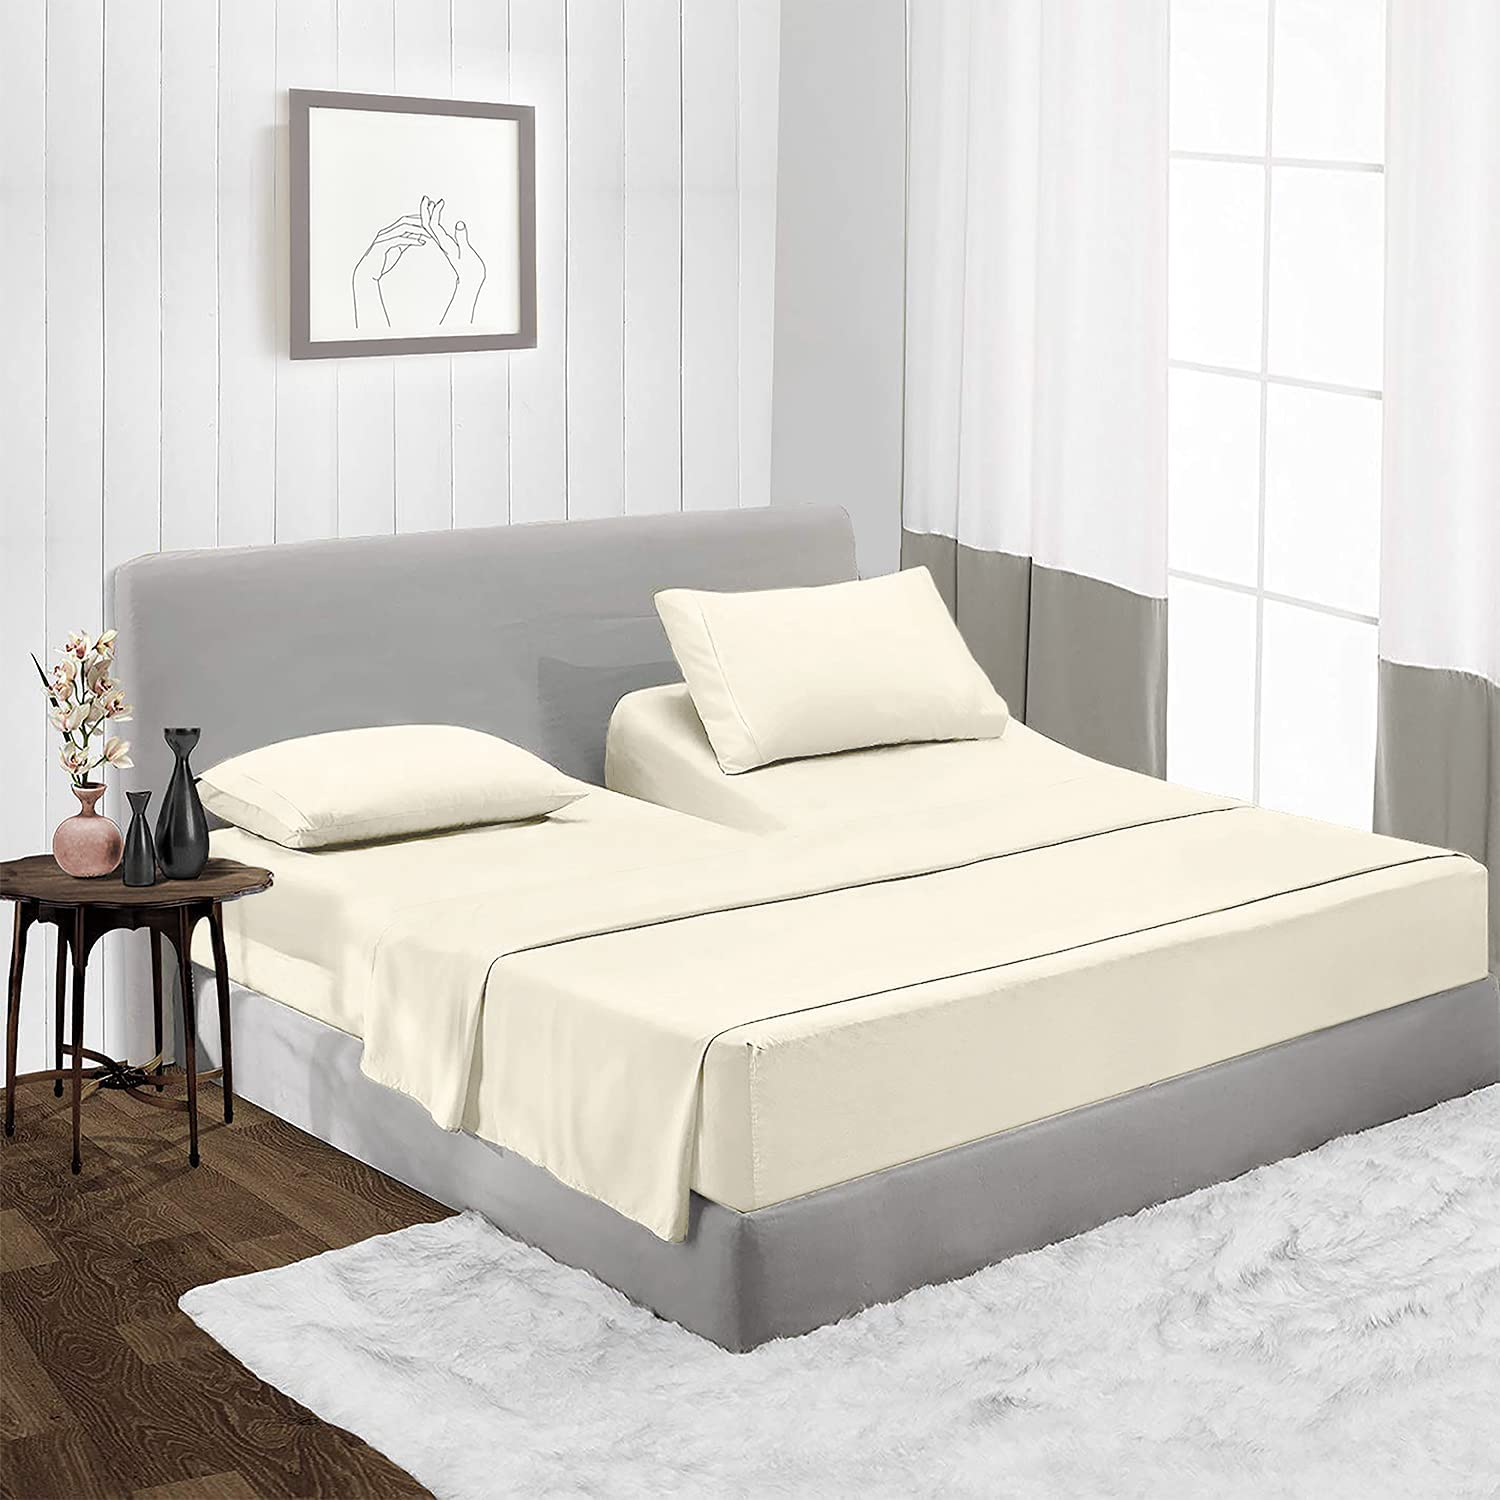 Soft 600 Thread Count Cotton Ivory Max Attention brand 54% OFF Sheet Split Lo 100% King Set